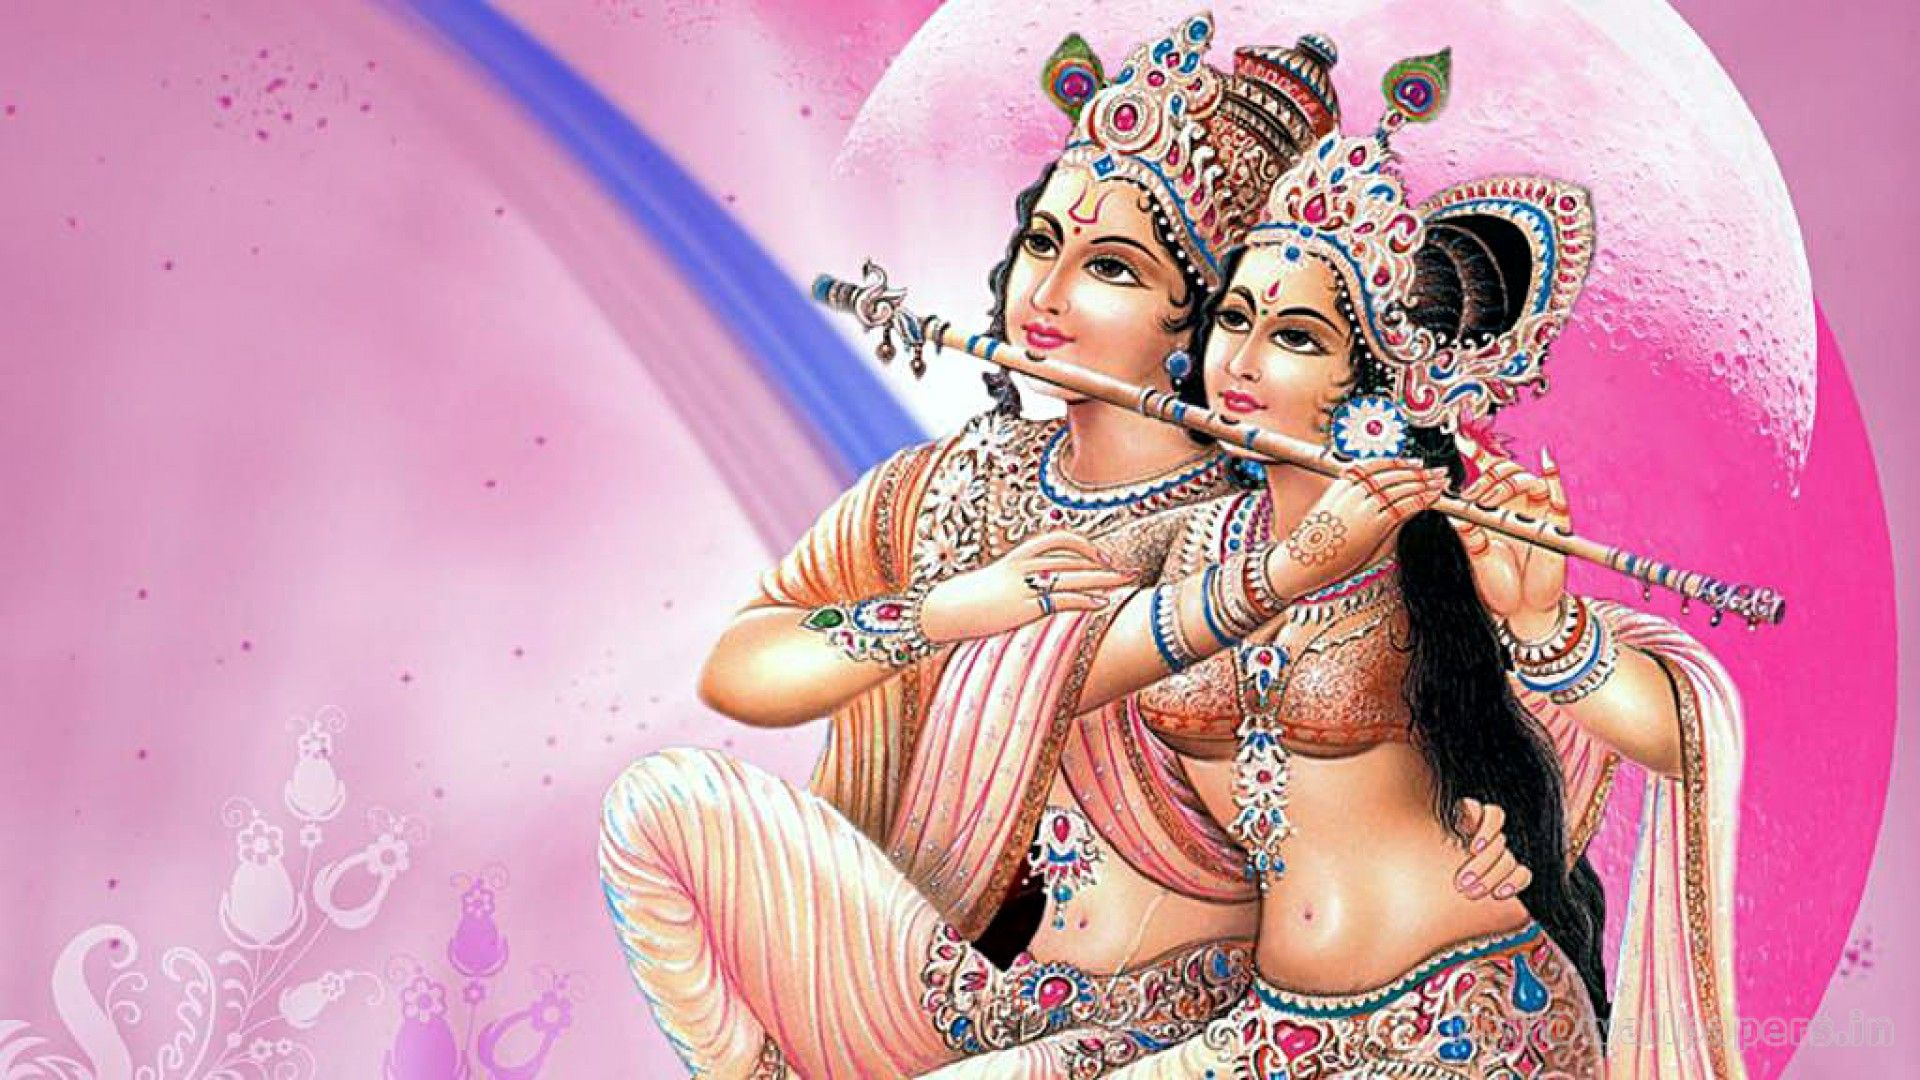 Hd wallpaper krishna and radha - Hd Wallpapers Of Lord Radha Krishna Hd Wallpapers